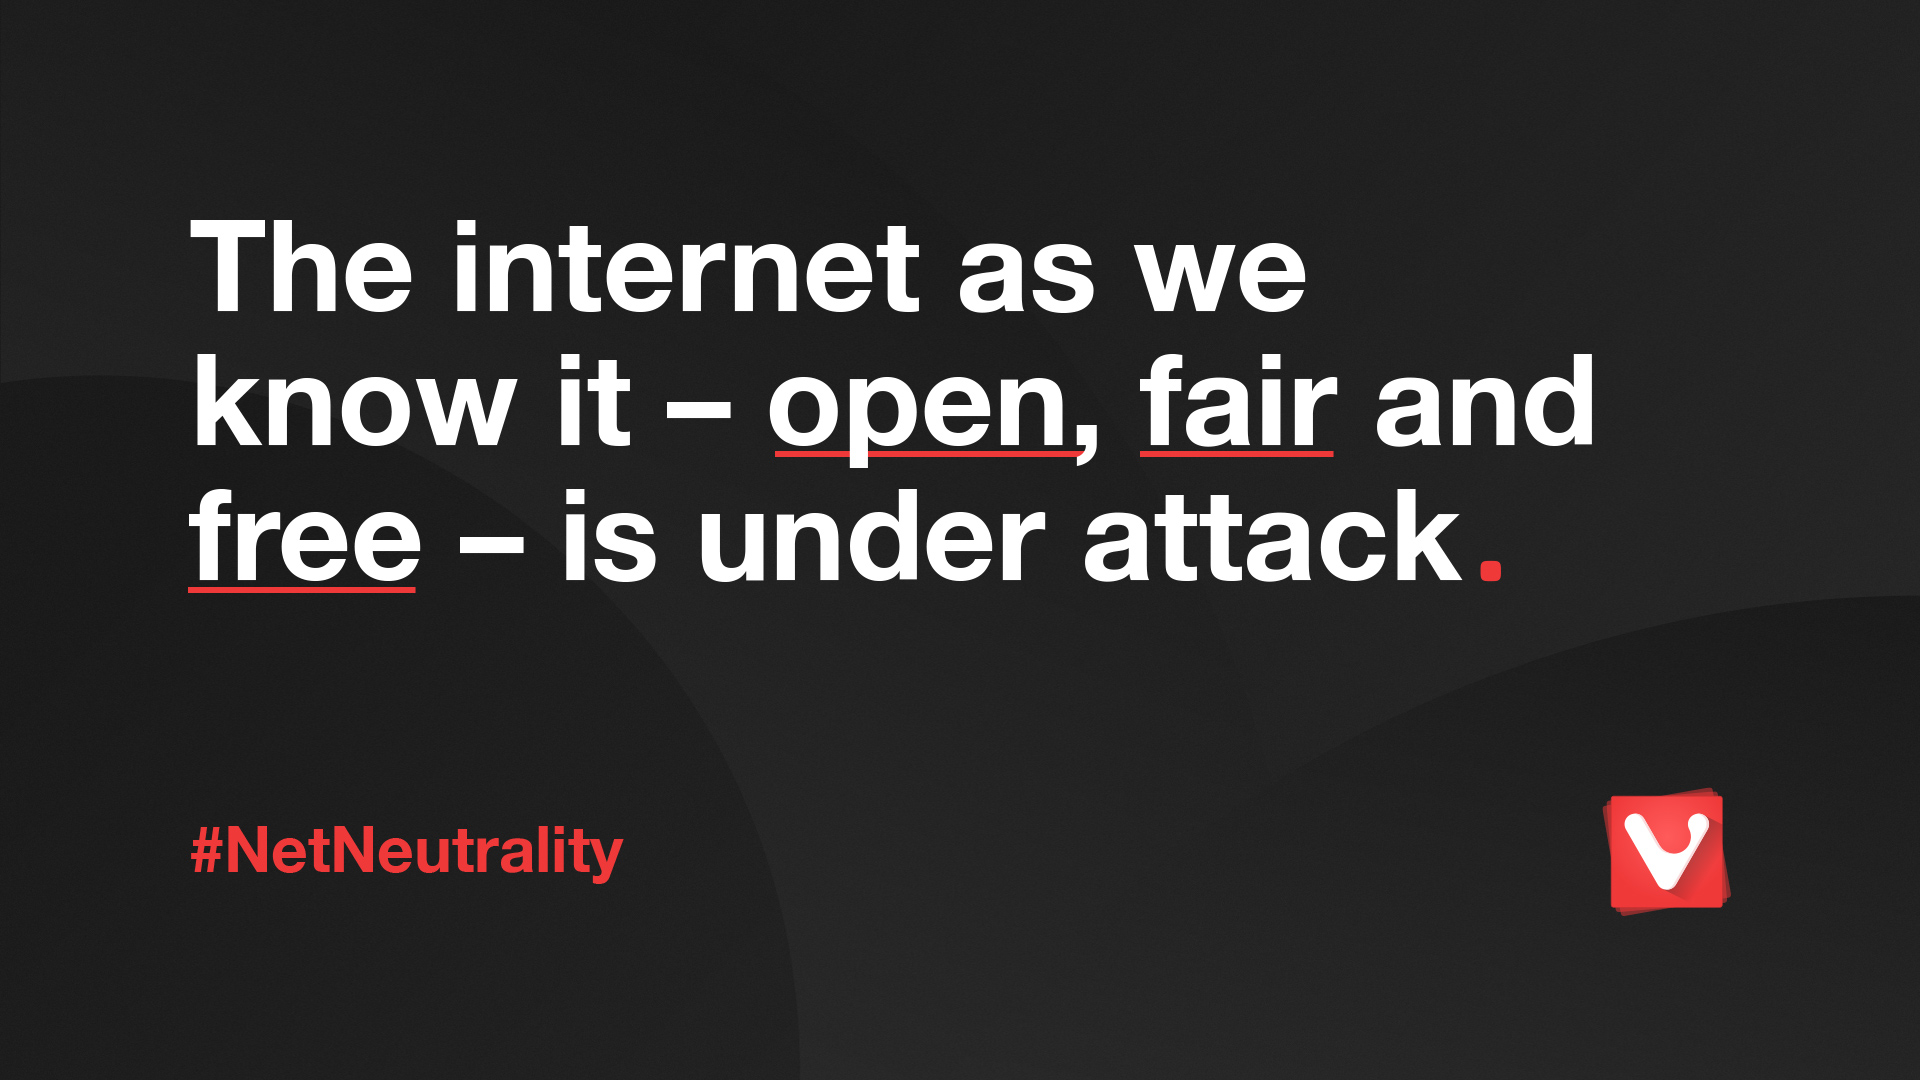 The End Of Net Neutrality? Will Corporate Greed Win Again?